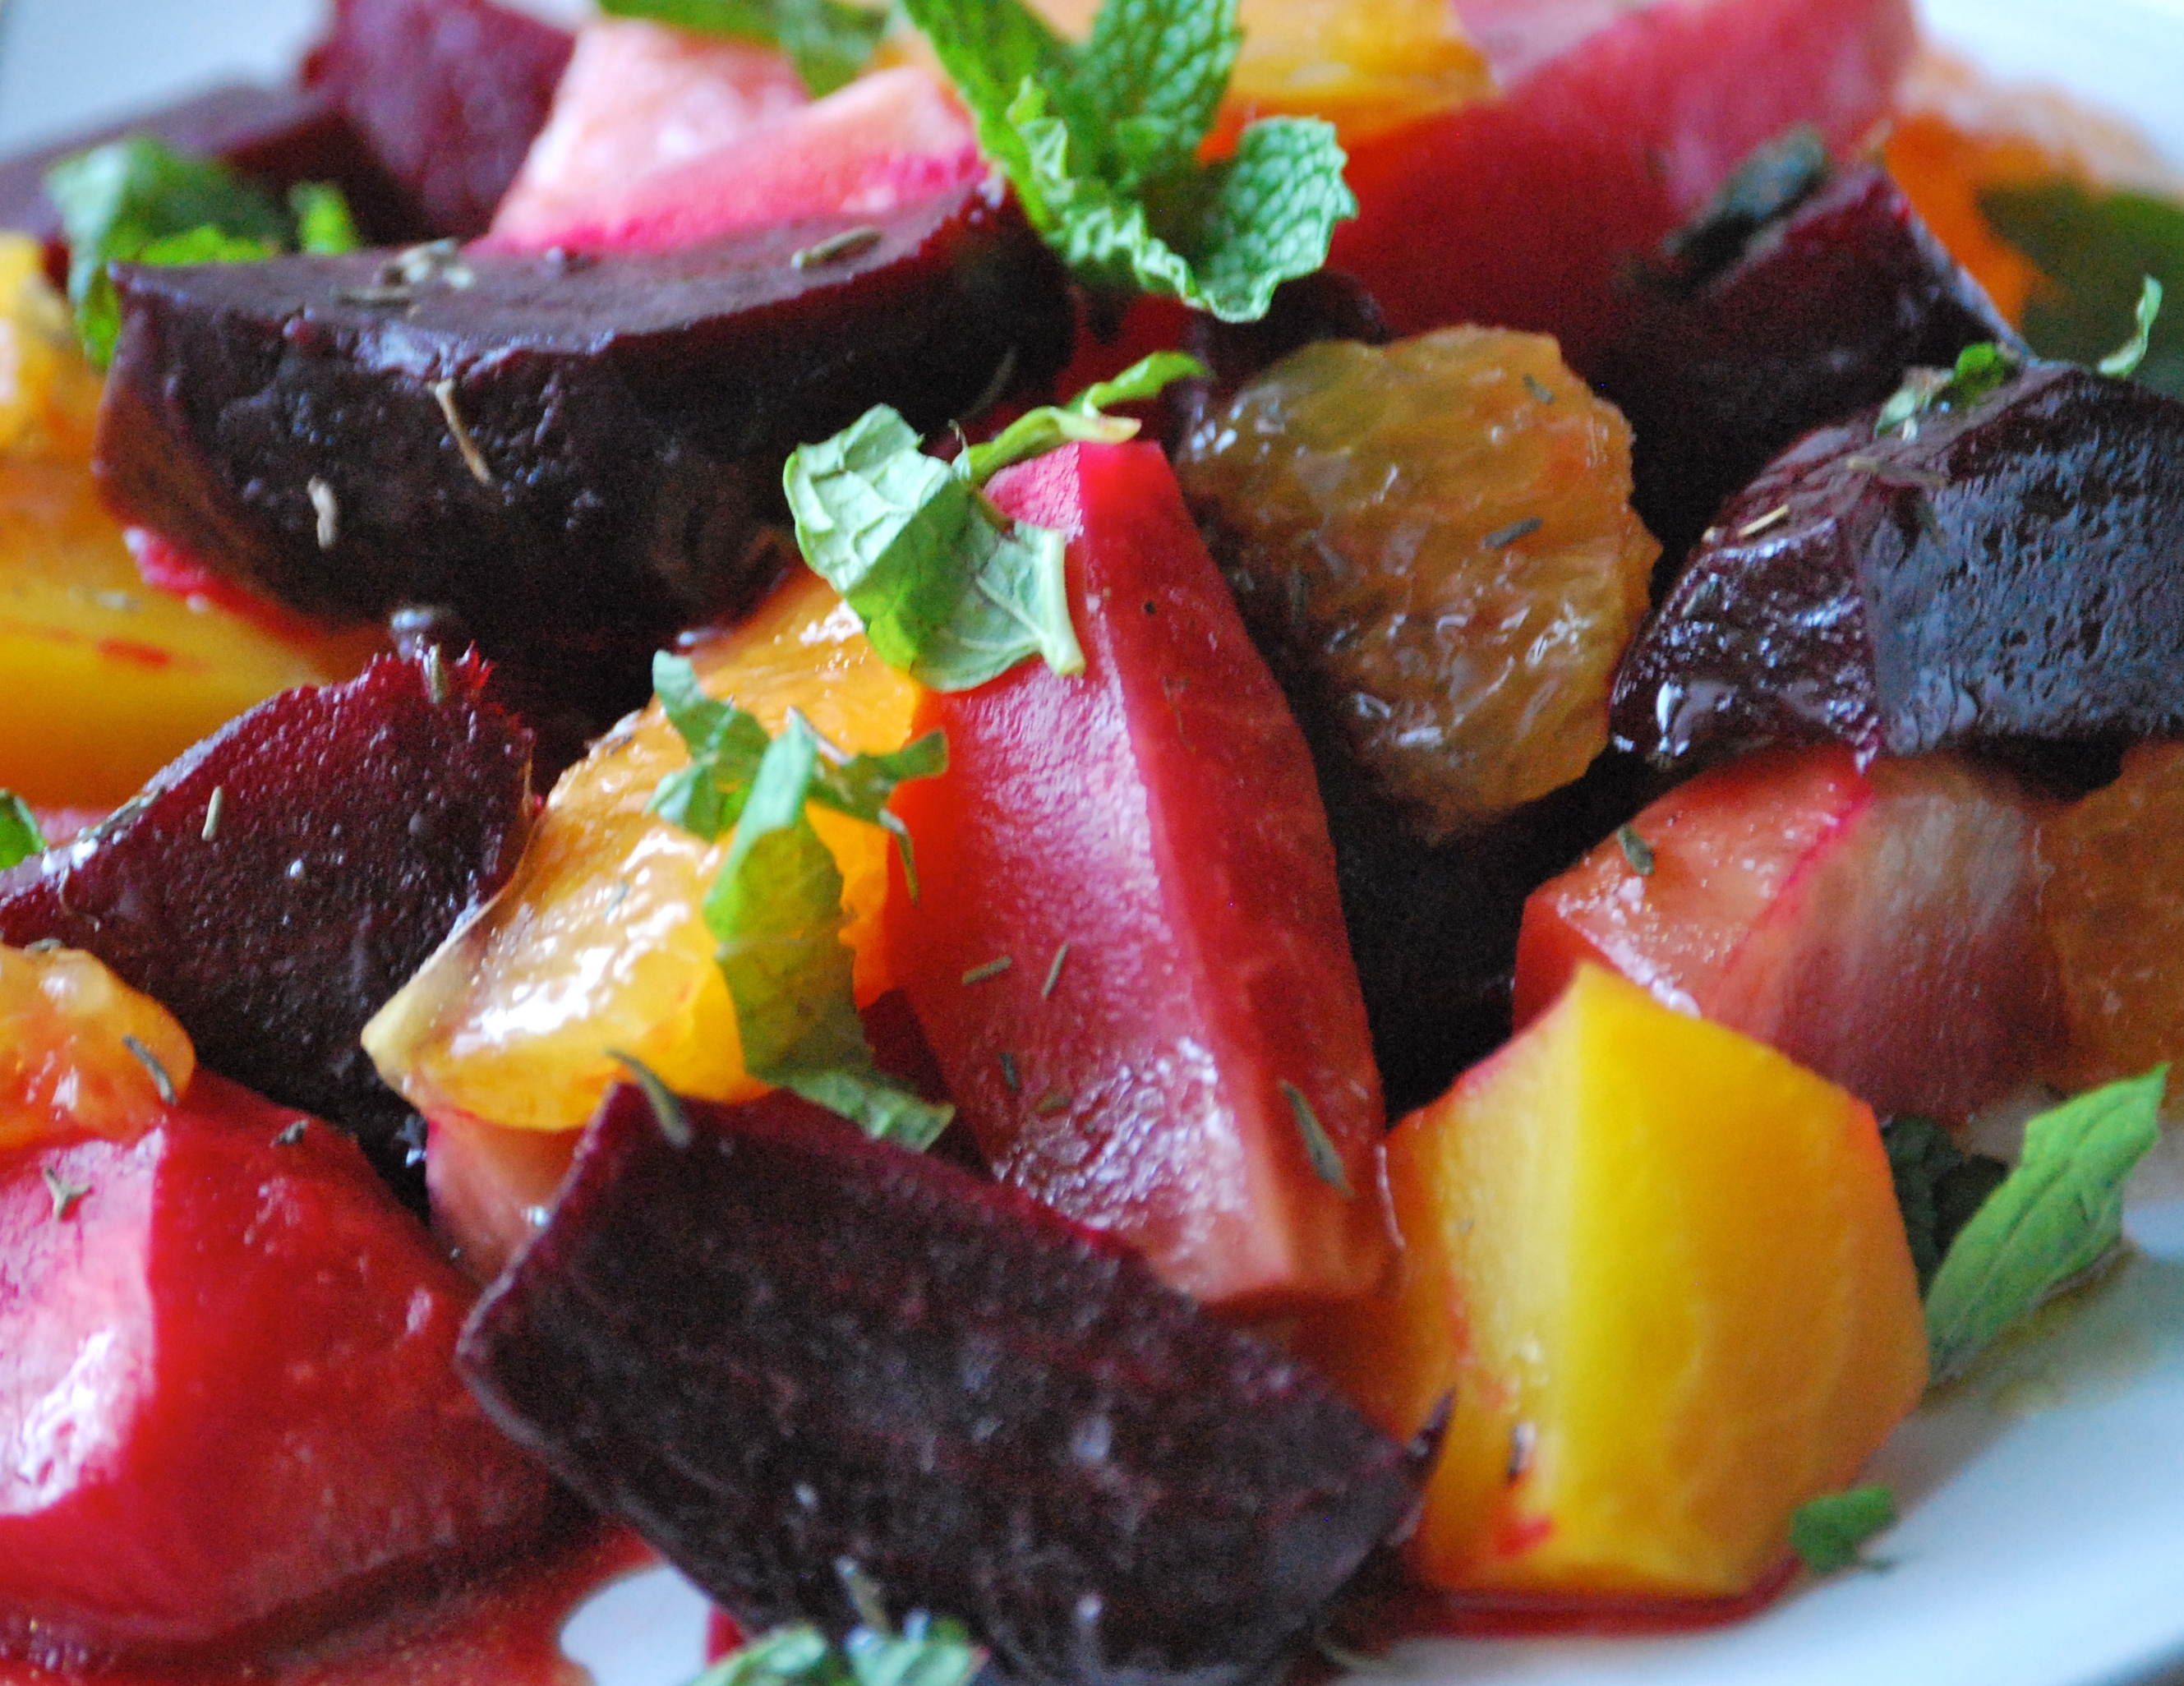 Roasted Heirloom Beet Salad with Zesty Raspberry Orange Dressing.